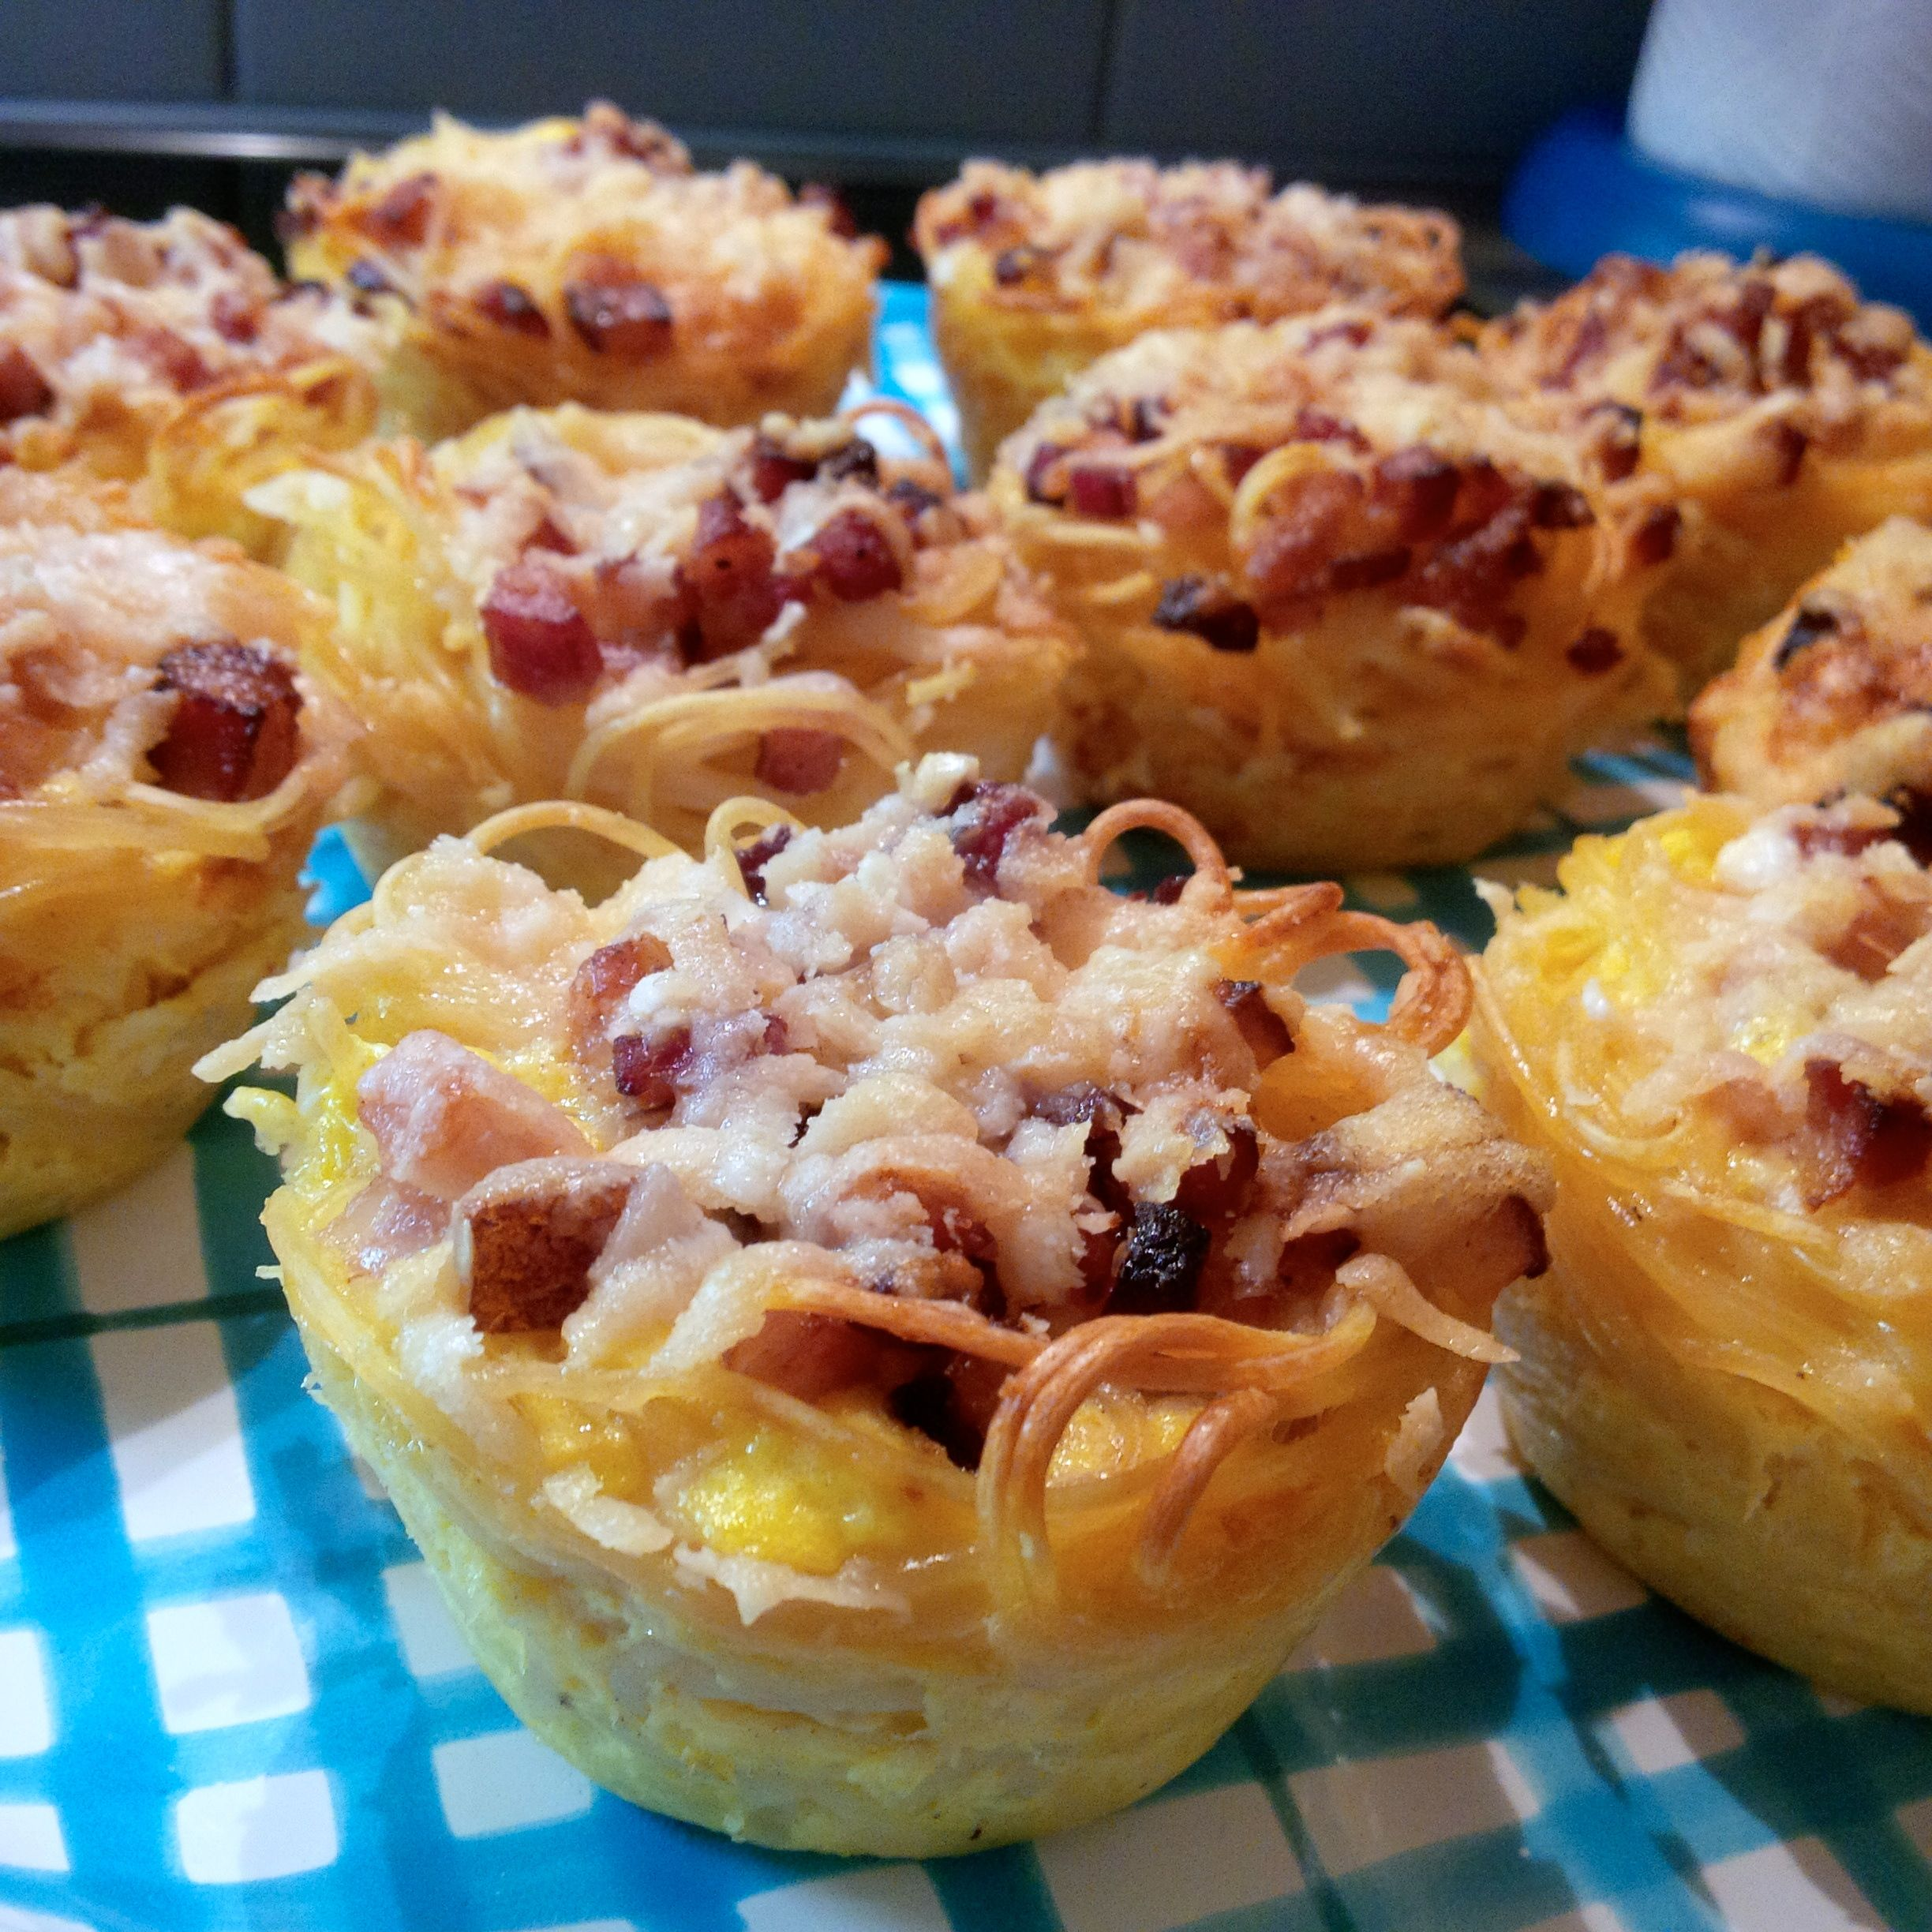 Spaghetti Carbonara Muffins, easy and delicious party finger food! I used this recipe: http://www.sixx.at/tv/enie-backt/rezepte/spaghetti-carbonara-muffins-das-rezept-aus-enie-backt